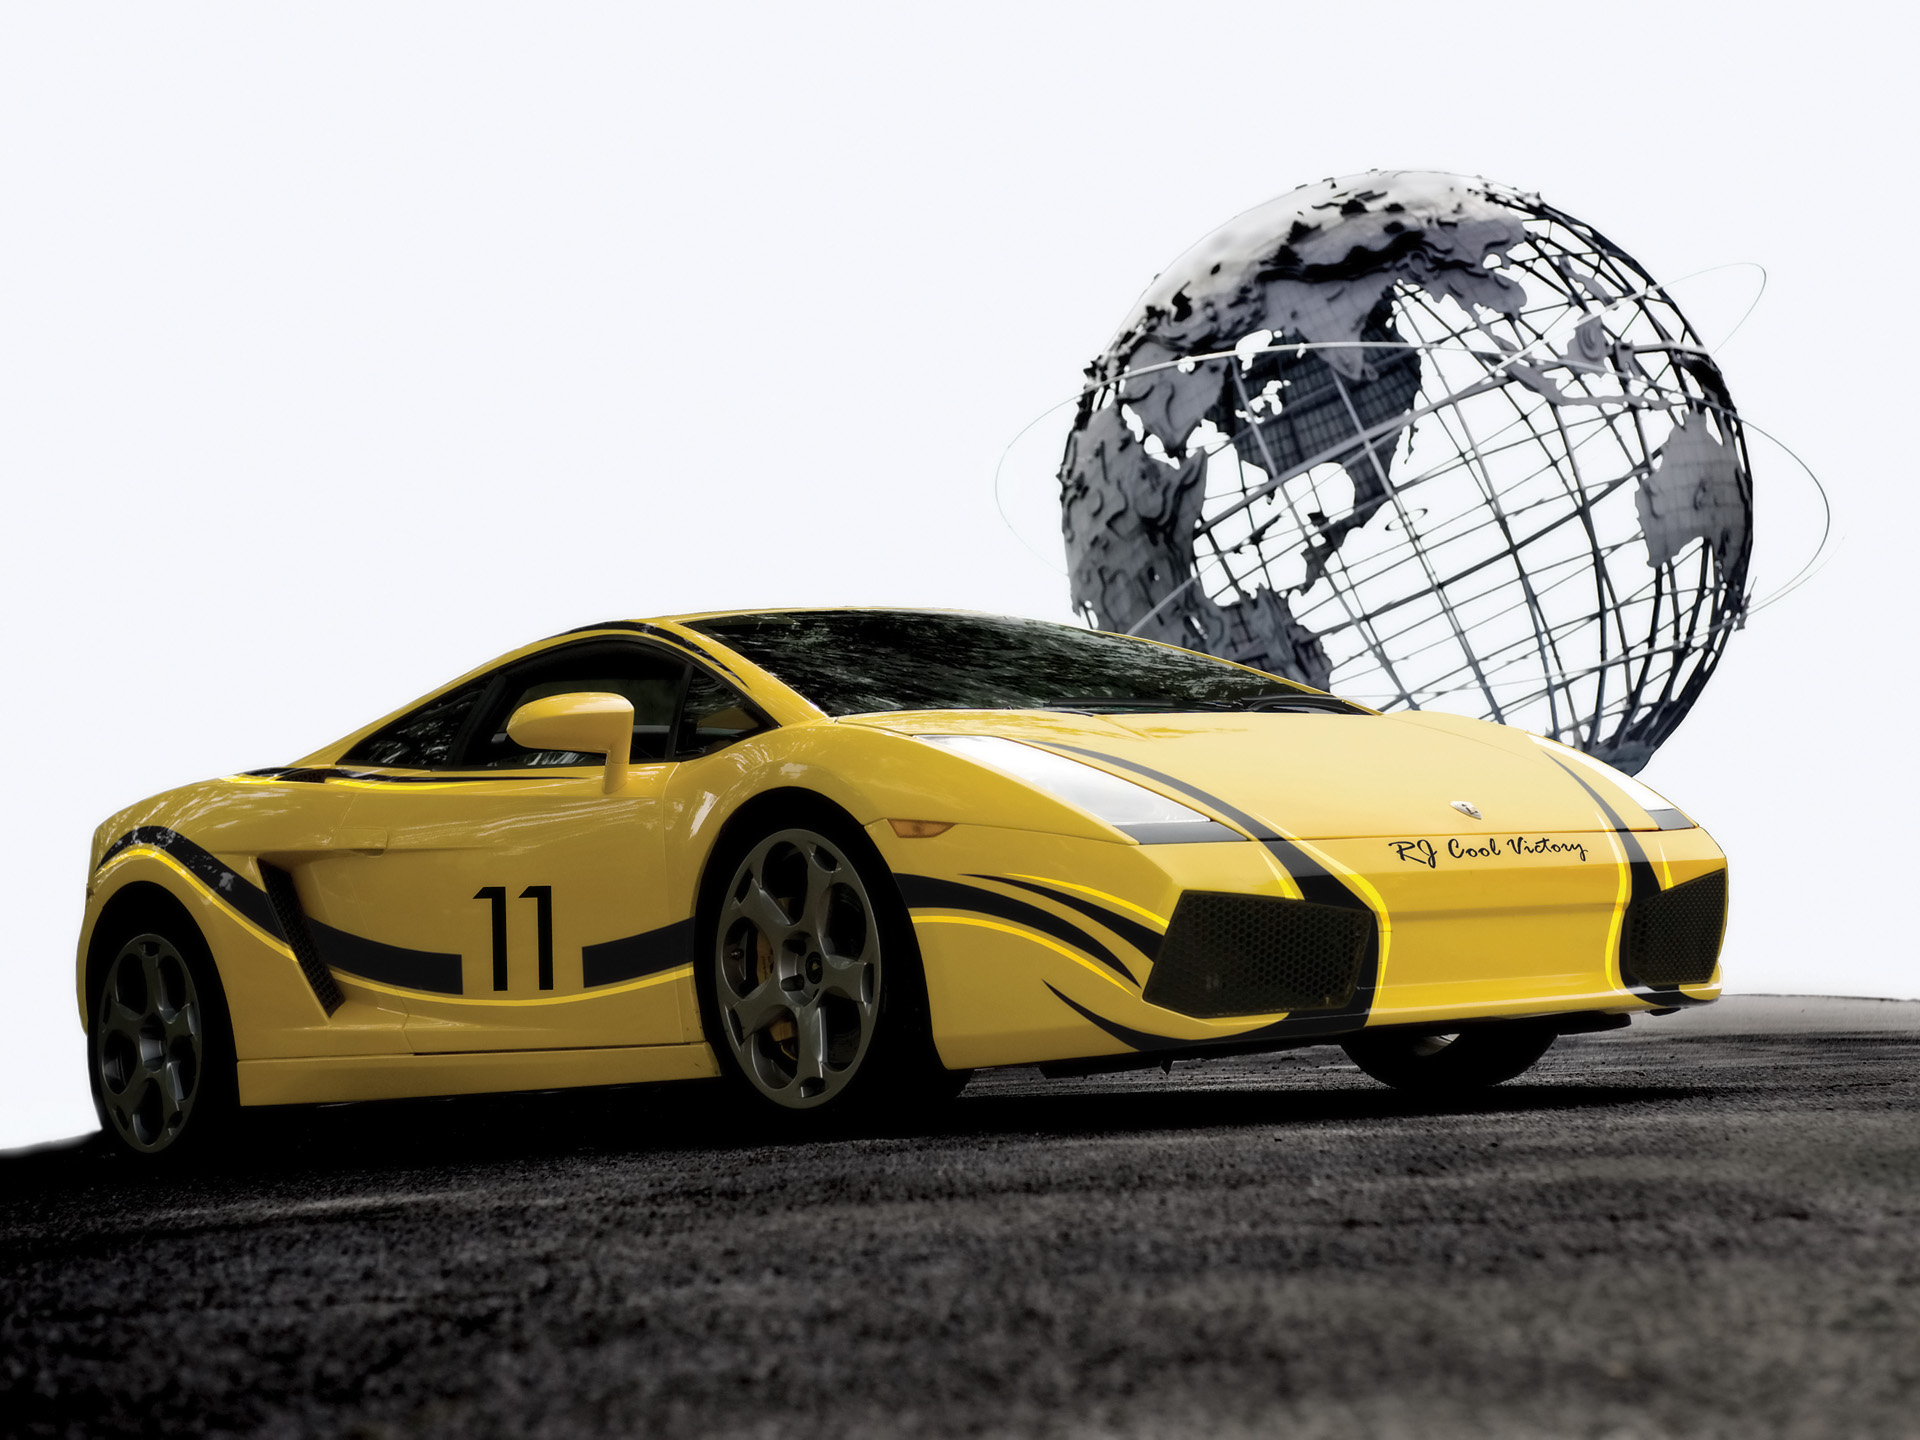 Cool Victory Lamborghini Gallardo wallpaper